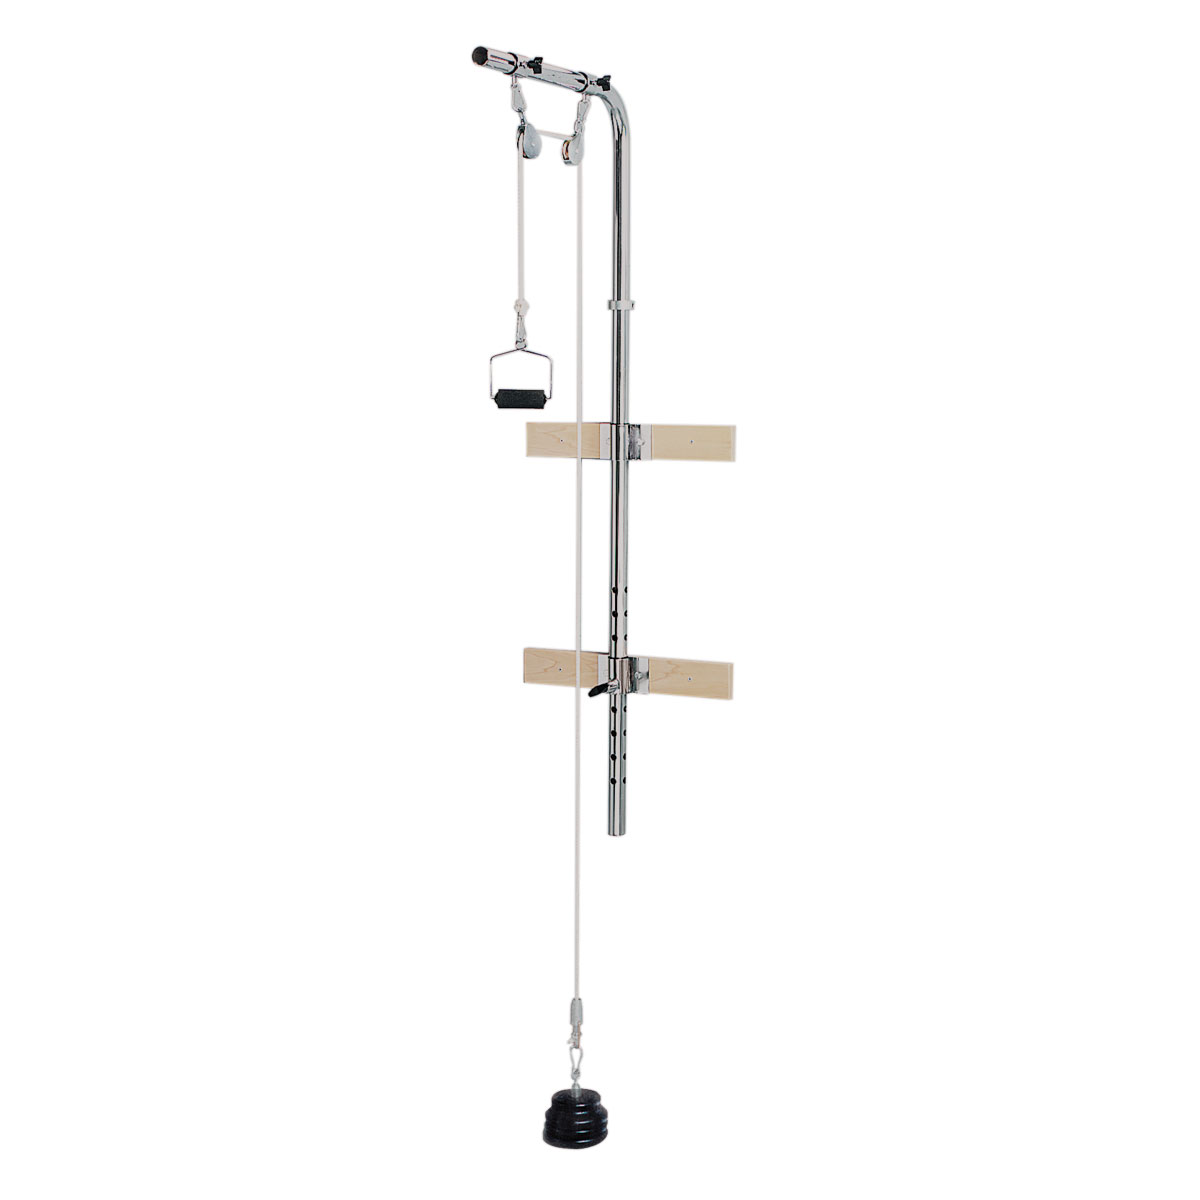 Overhead Wall Pulley System W50870 Bailey 609